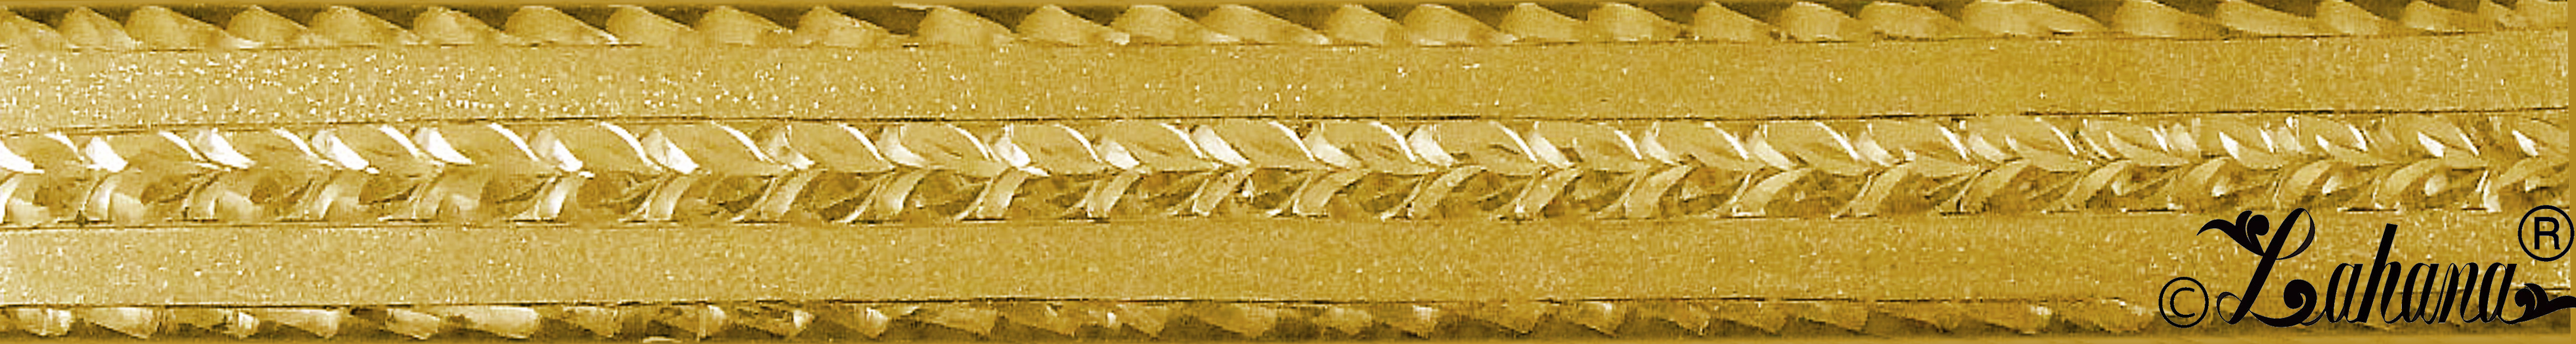 14k-sample-logo-md-f.jpg